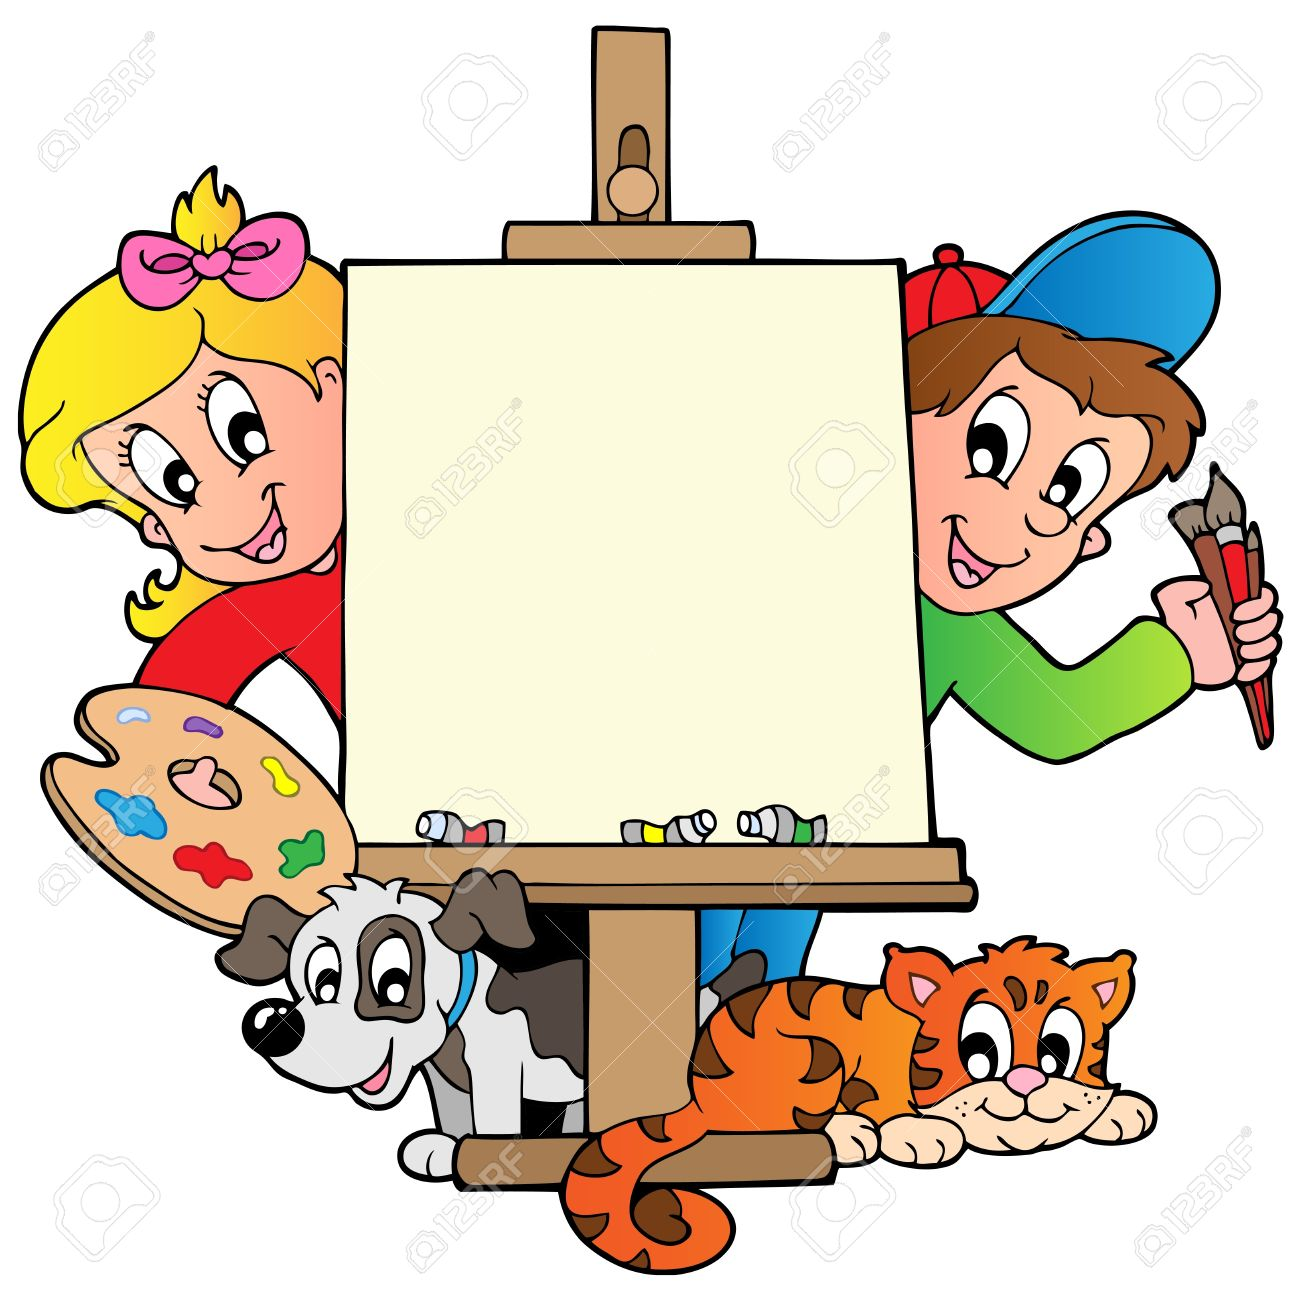 Cartoon Kids With Painting Canvas - Vector Illustration. Royalty ...